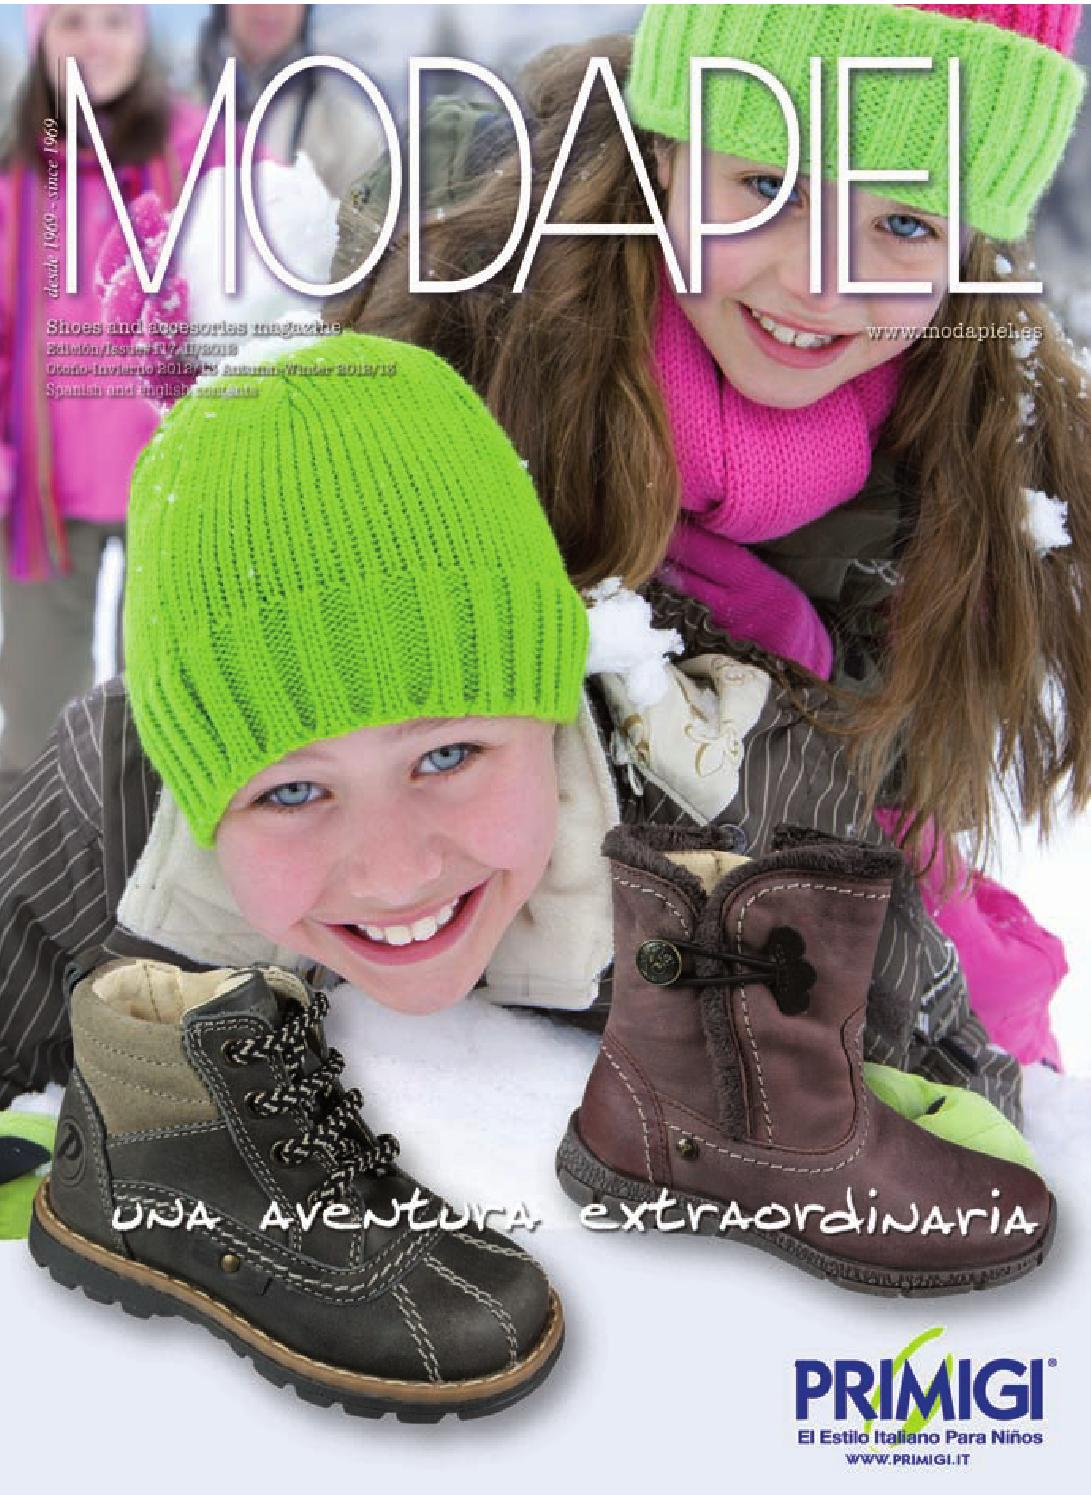 separation shoes 03a77 02ce2 Modapiel 117 Shoes and accessories magazine by Prensa Técnica S.L. - issuu